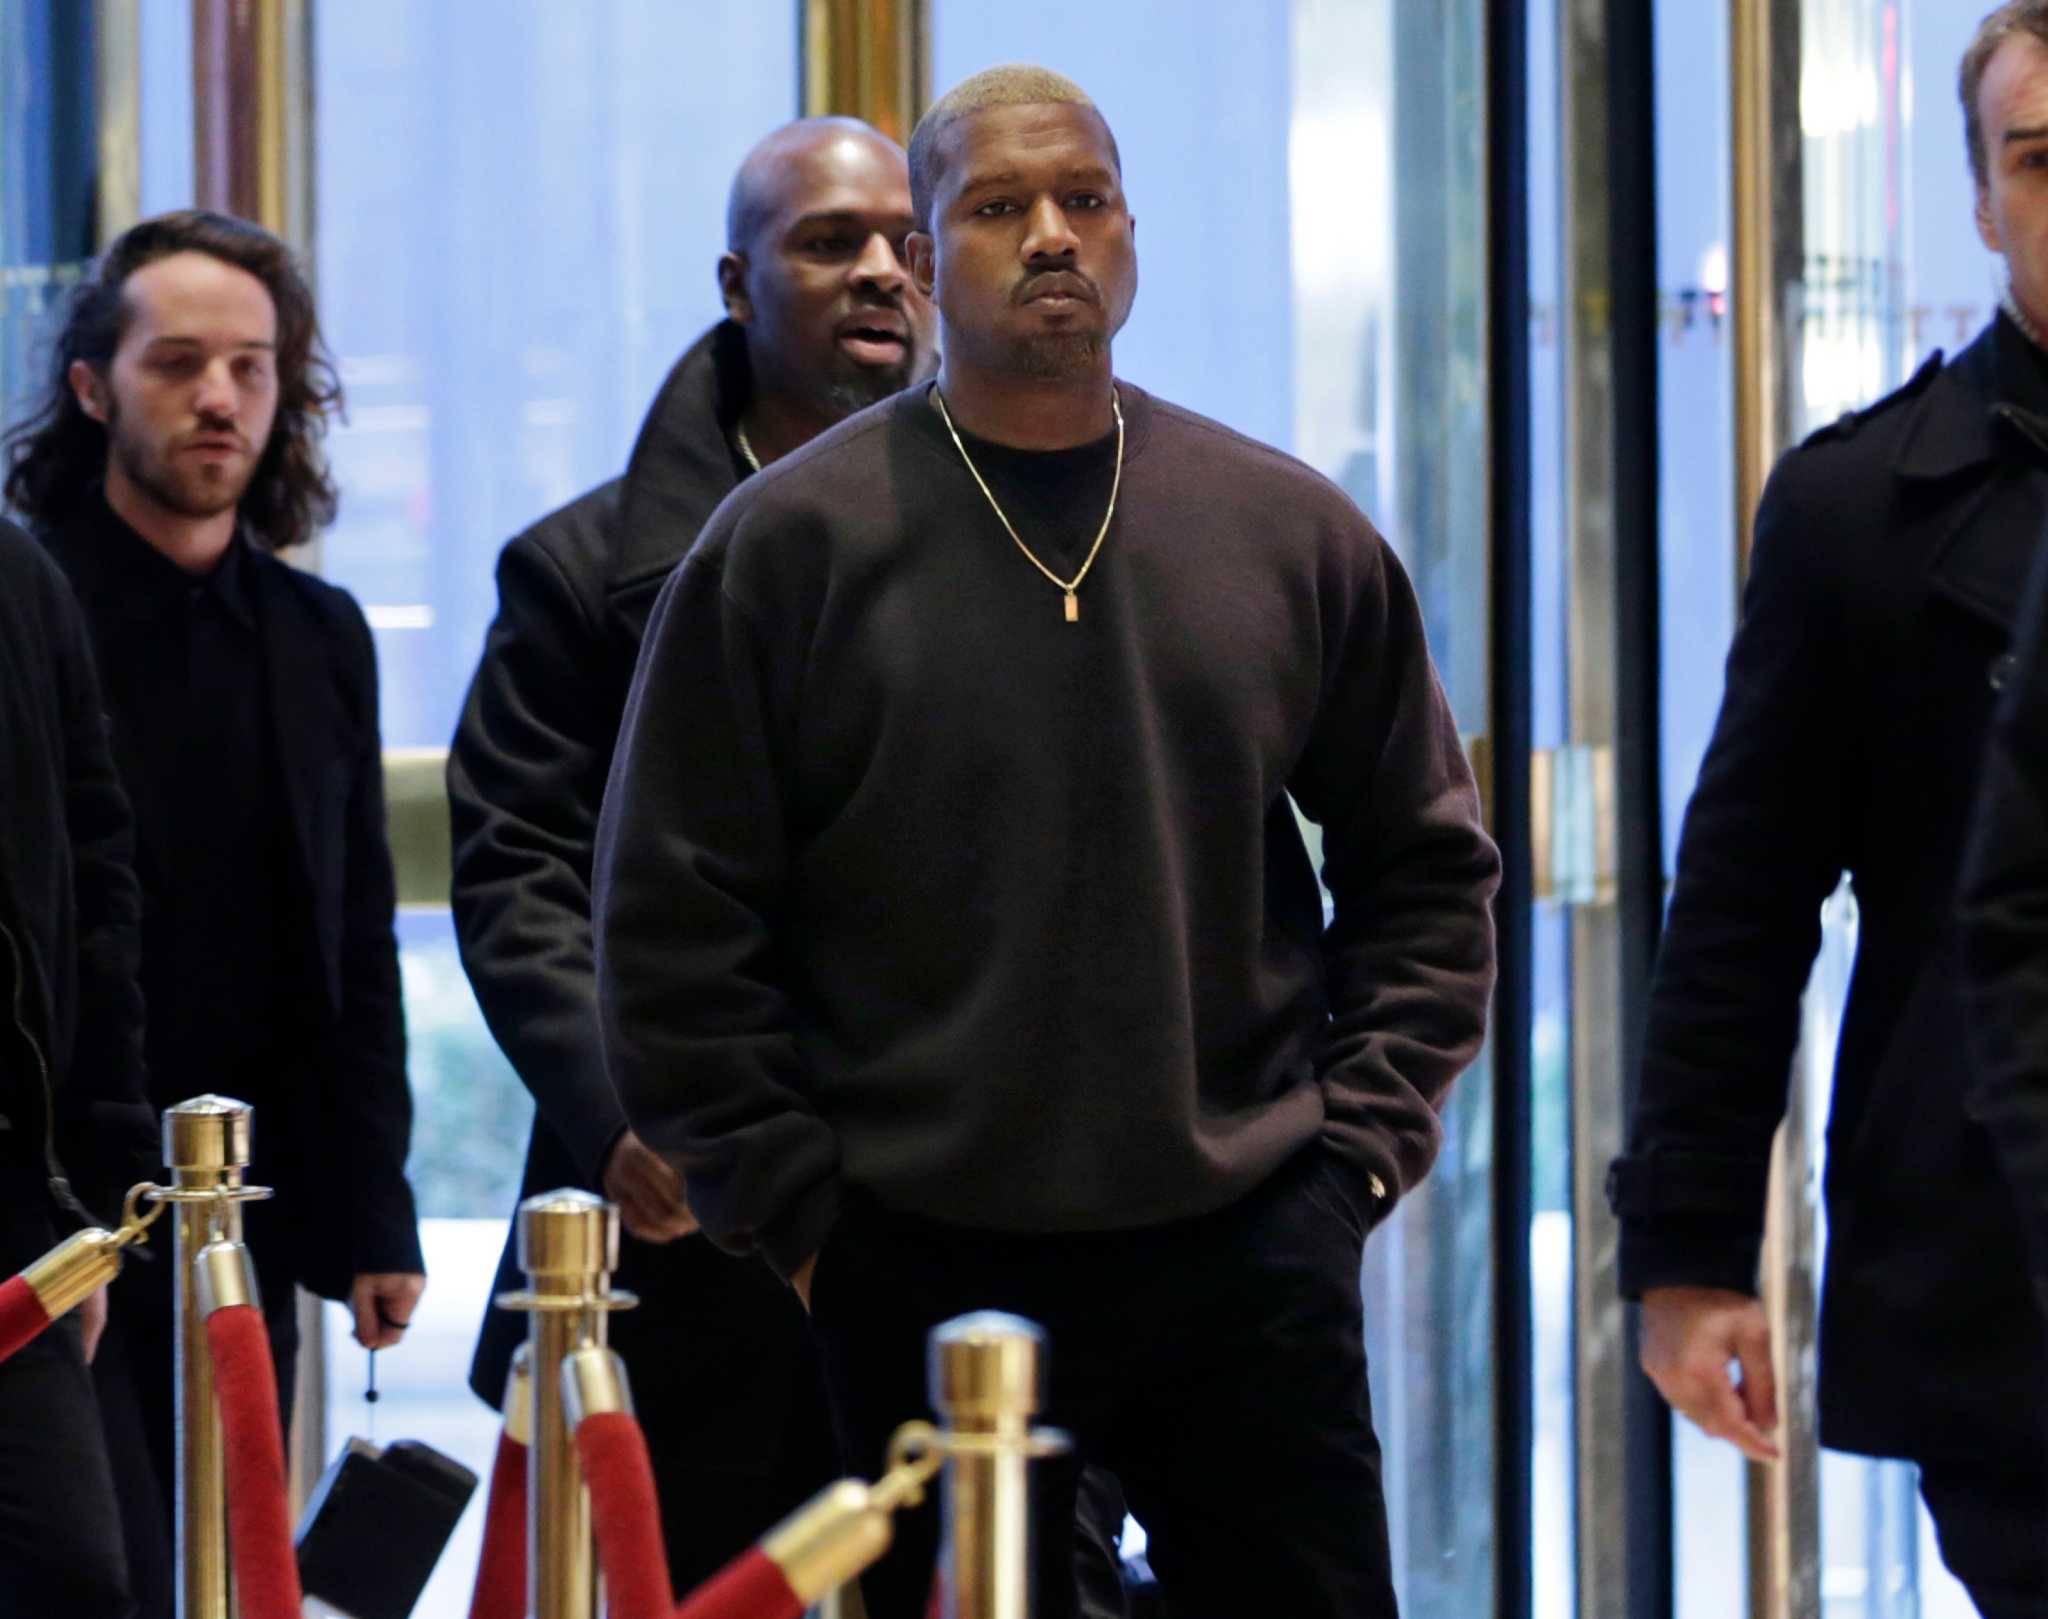 Kanye West's embrace of a black Trump supporter not well-received